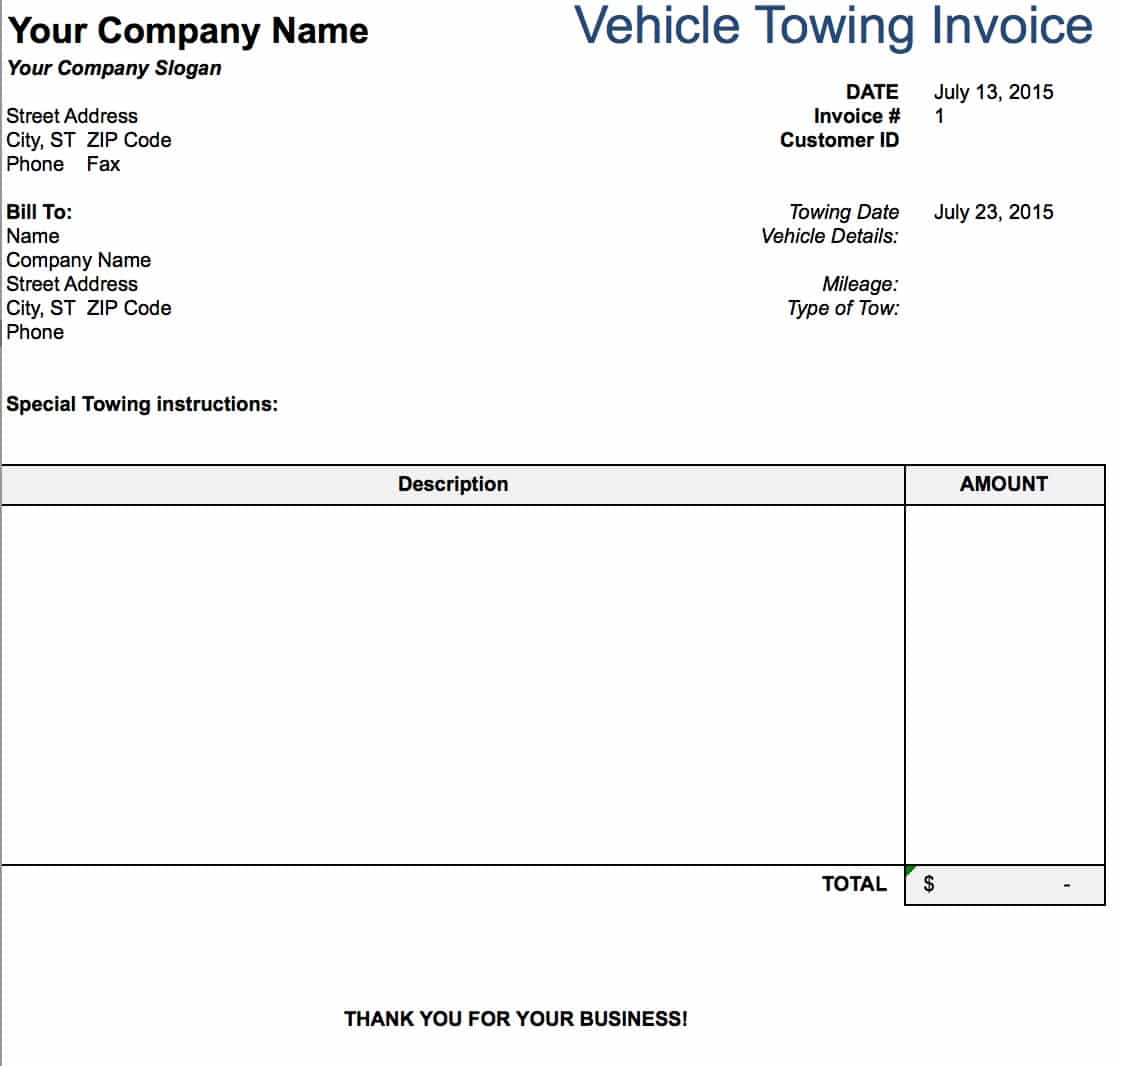 Free Tow Service Invoice Template Excel PDF Word Doc - Invoice proforma word for service business